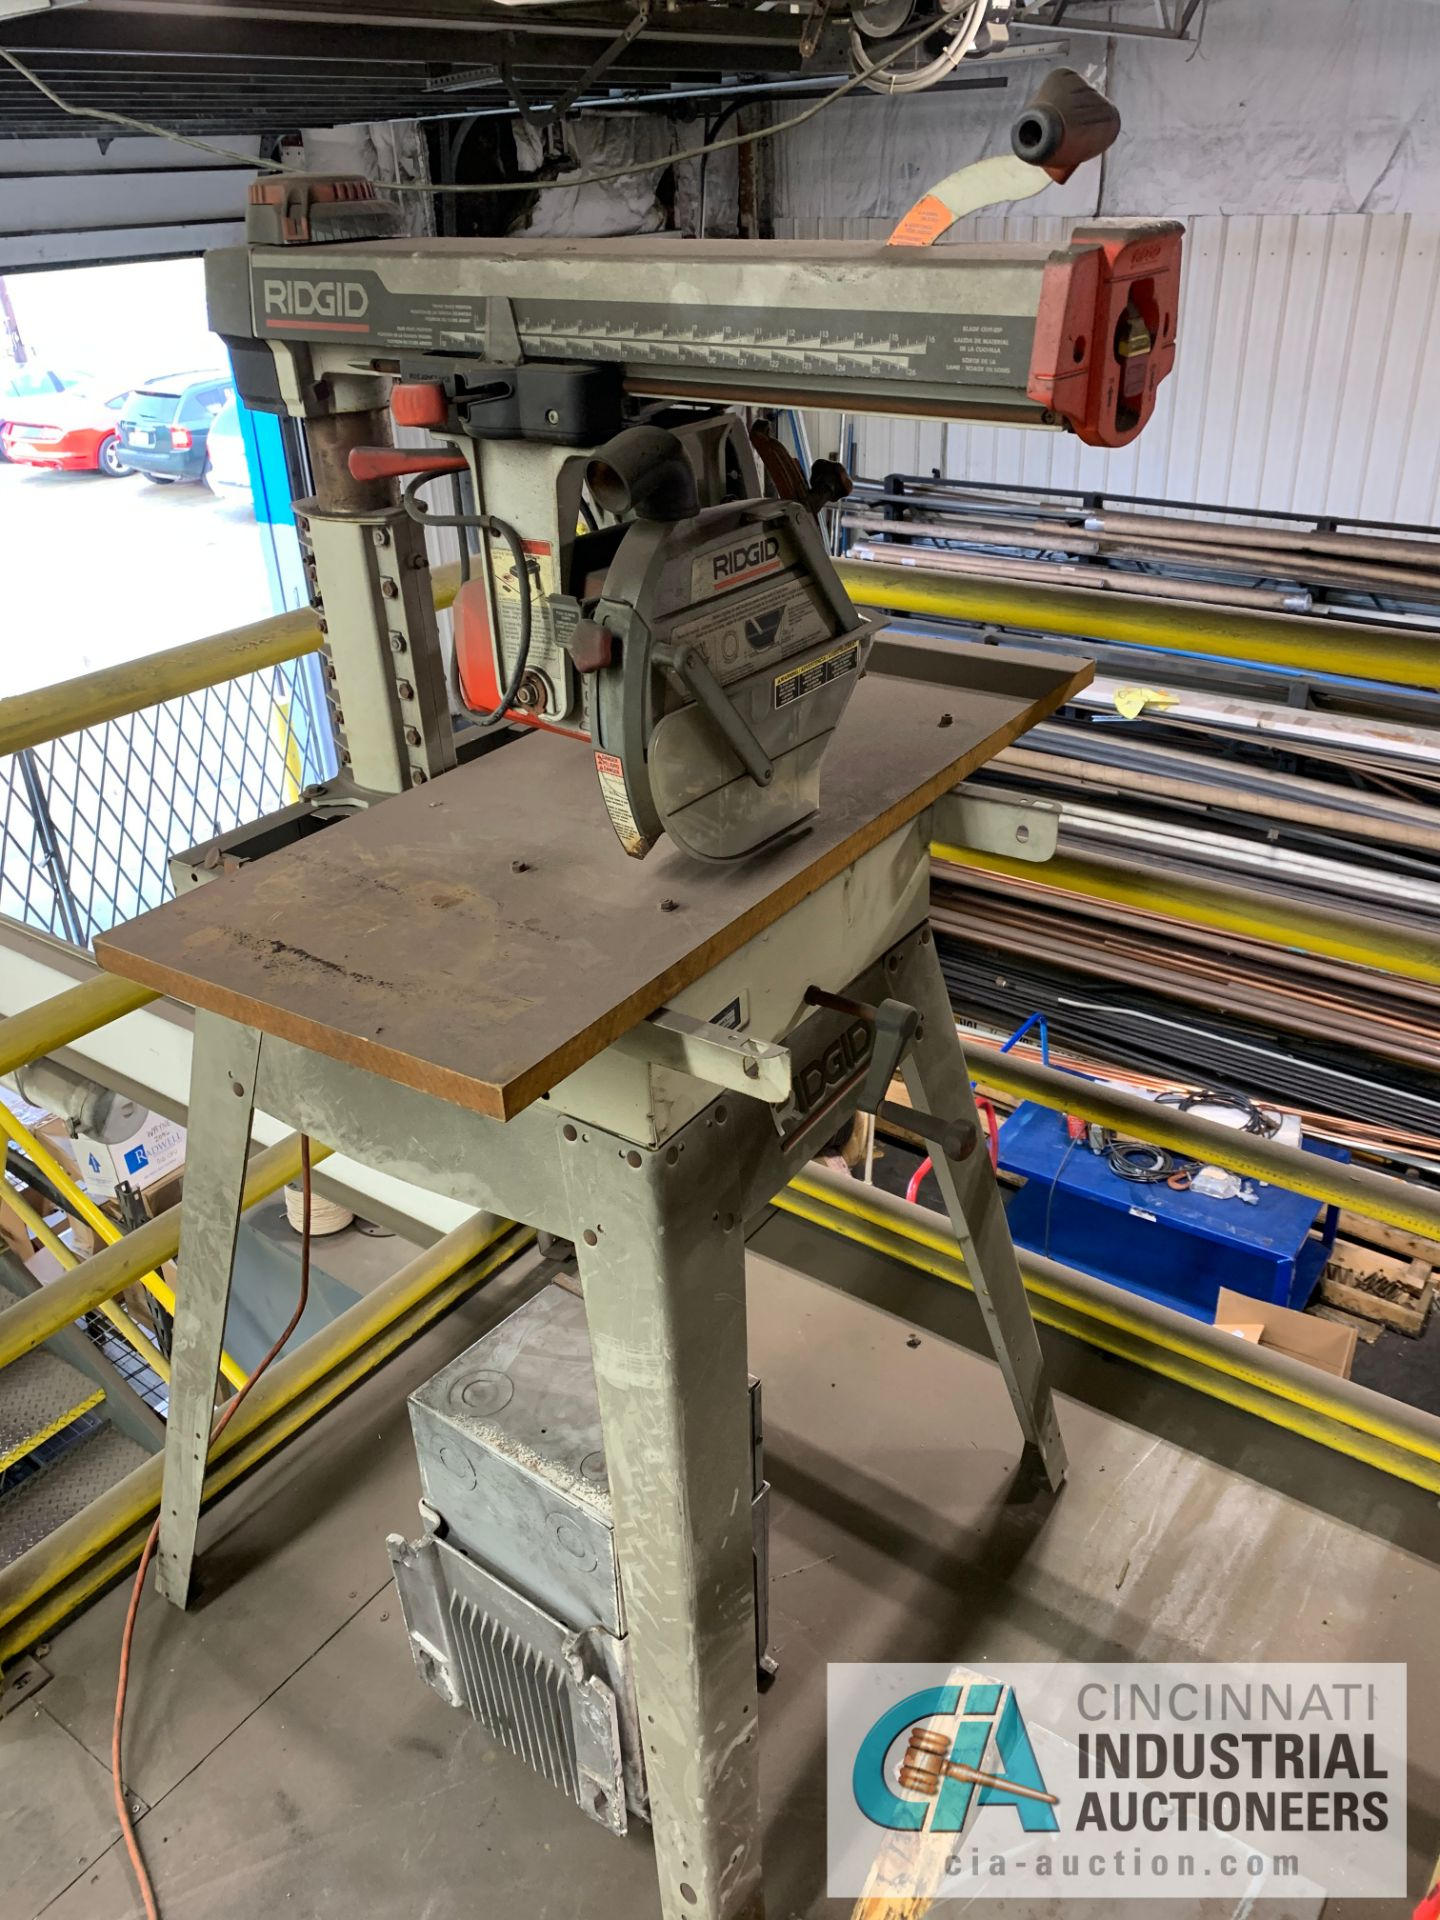 Lot 7 - RIGID RS1000 RADIAL ARM SAW **RIGGING FEE DUE TO SHOEMAKER $50.00**